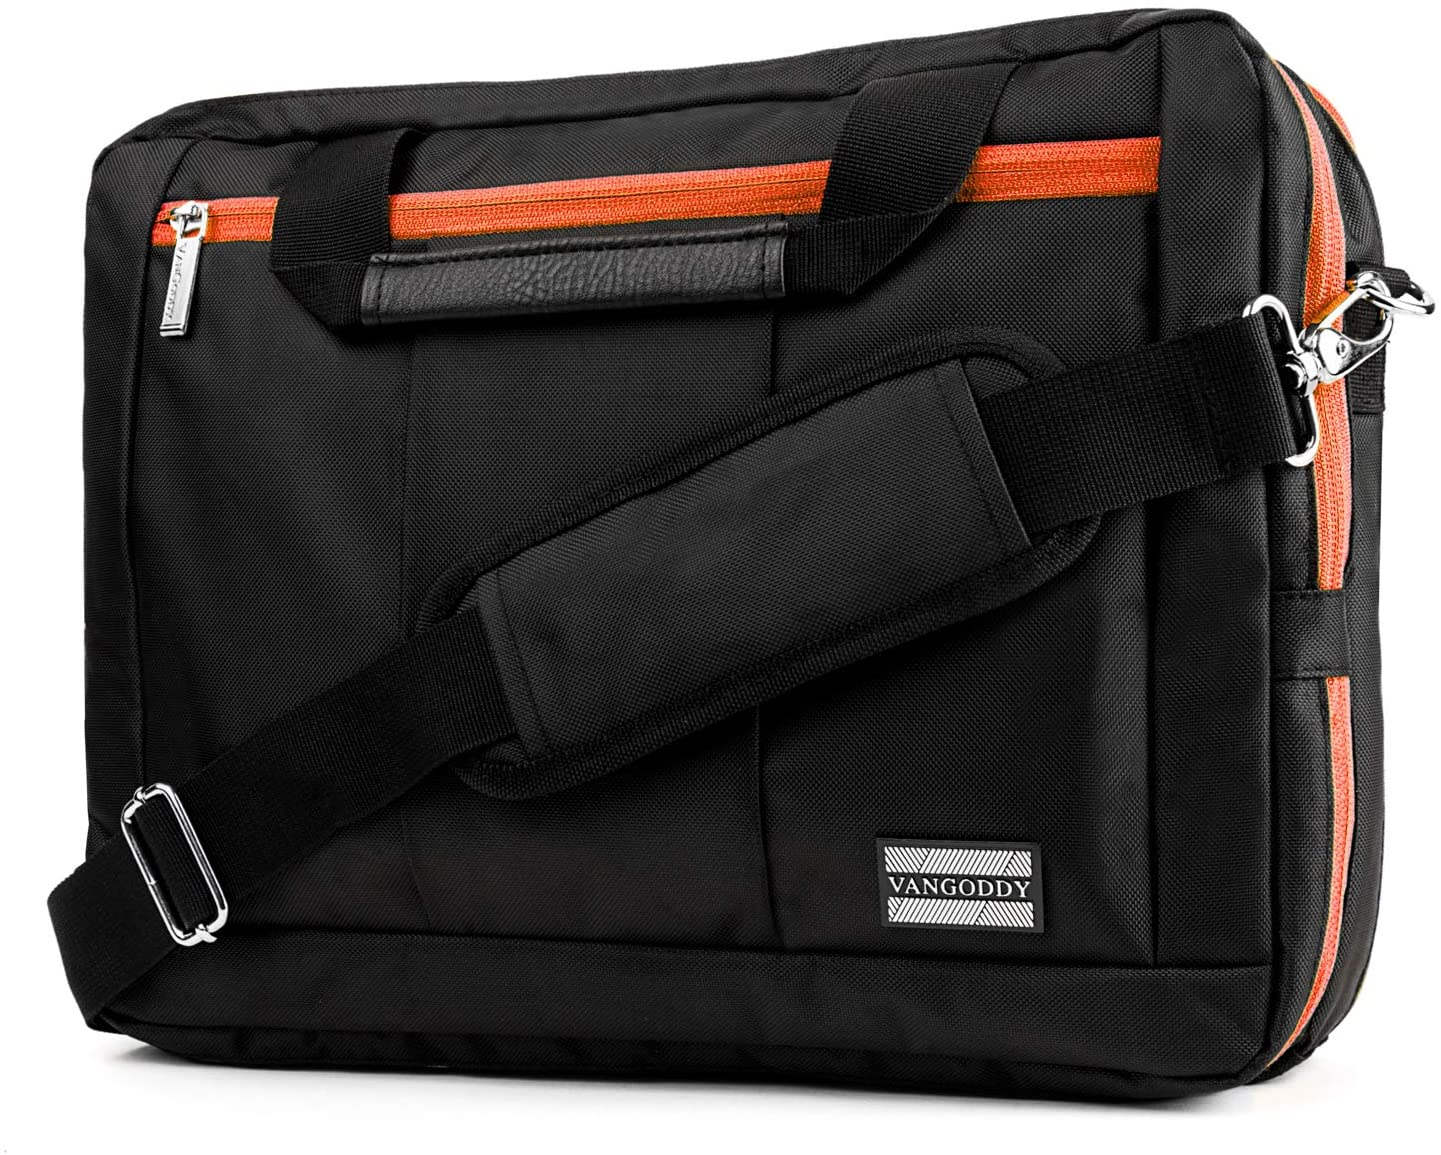 13.3 Inch Laptop Shoulder Bag for Jumper Ezbook X3, X3 Pro, Fujitsu LifeBook